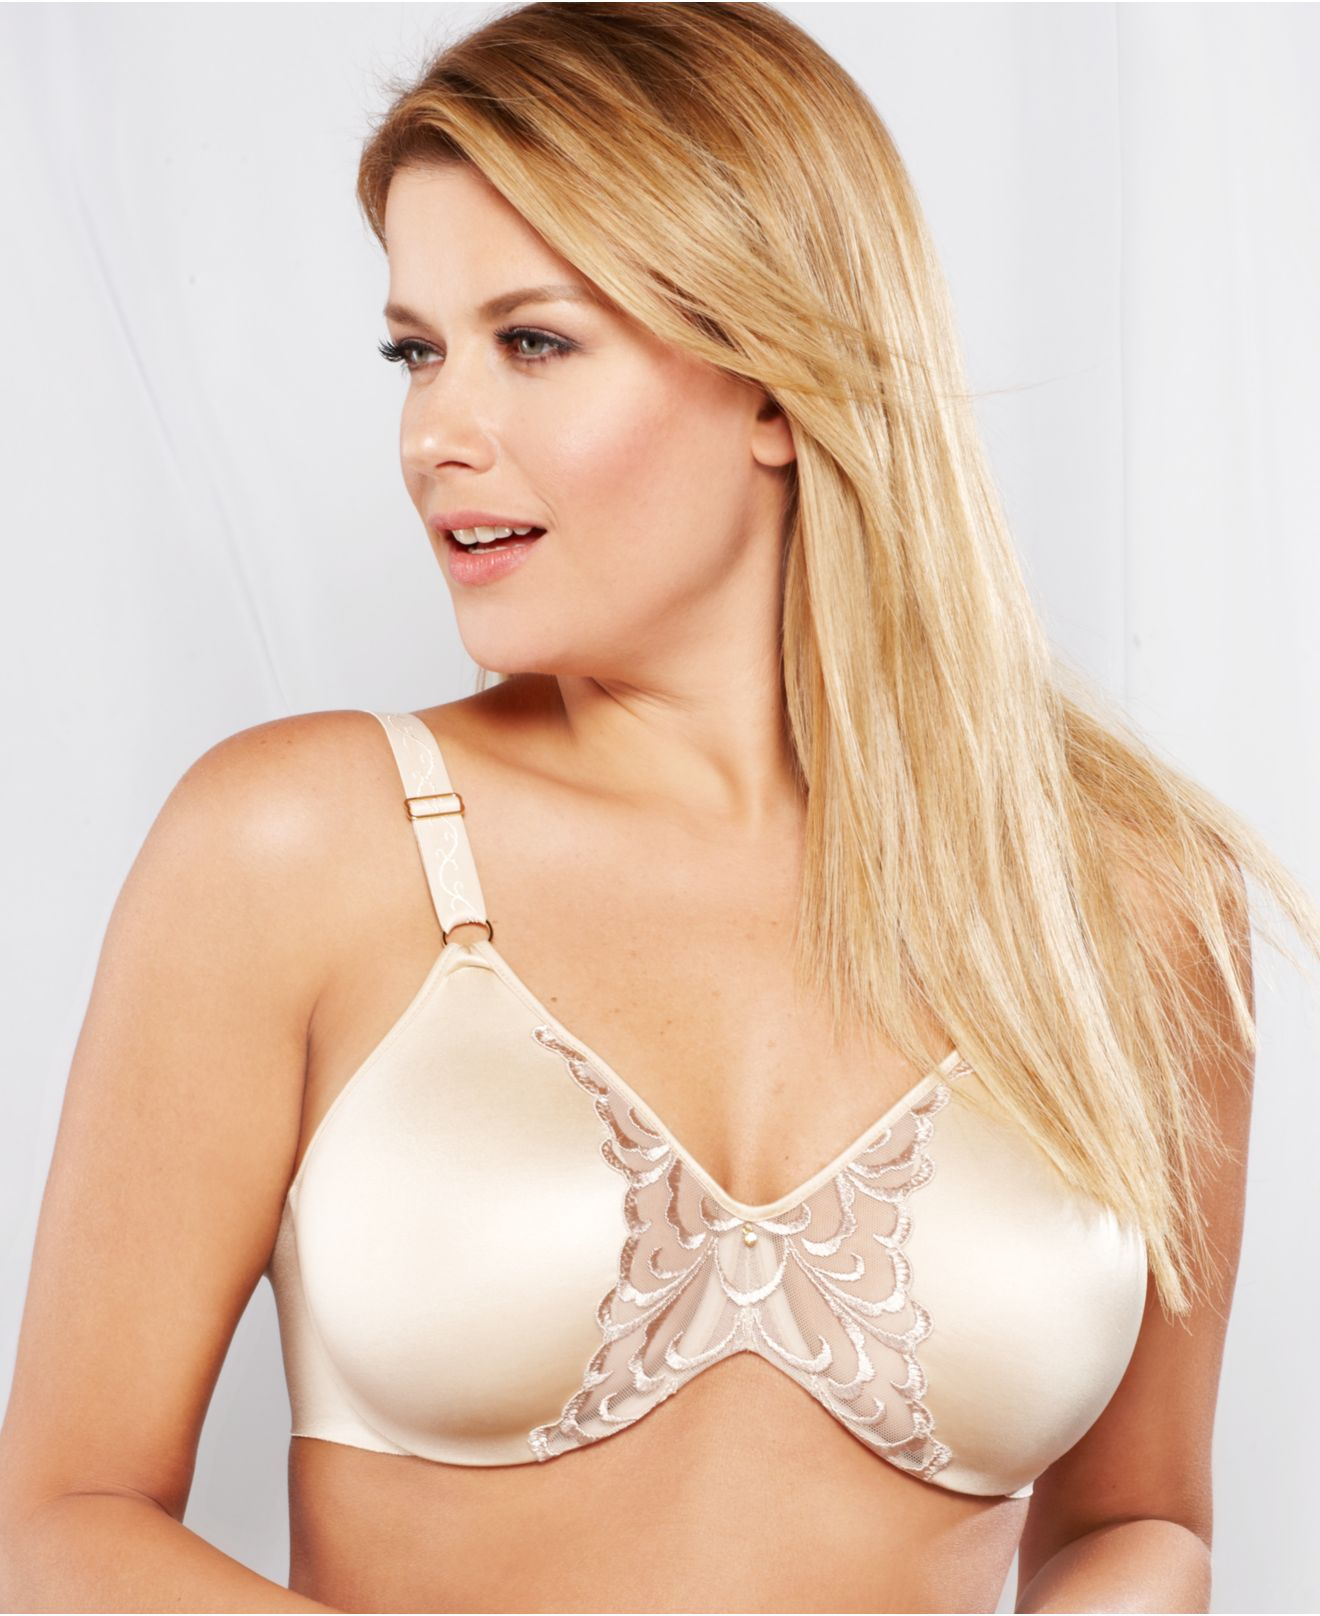 Lilyette By Bali Magnificent Beauty Embellished Minimizer Bra 481 ...